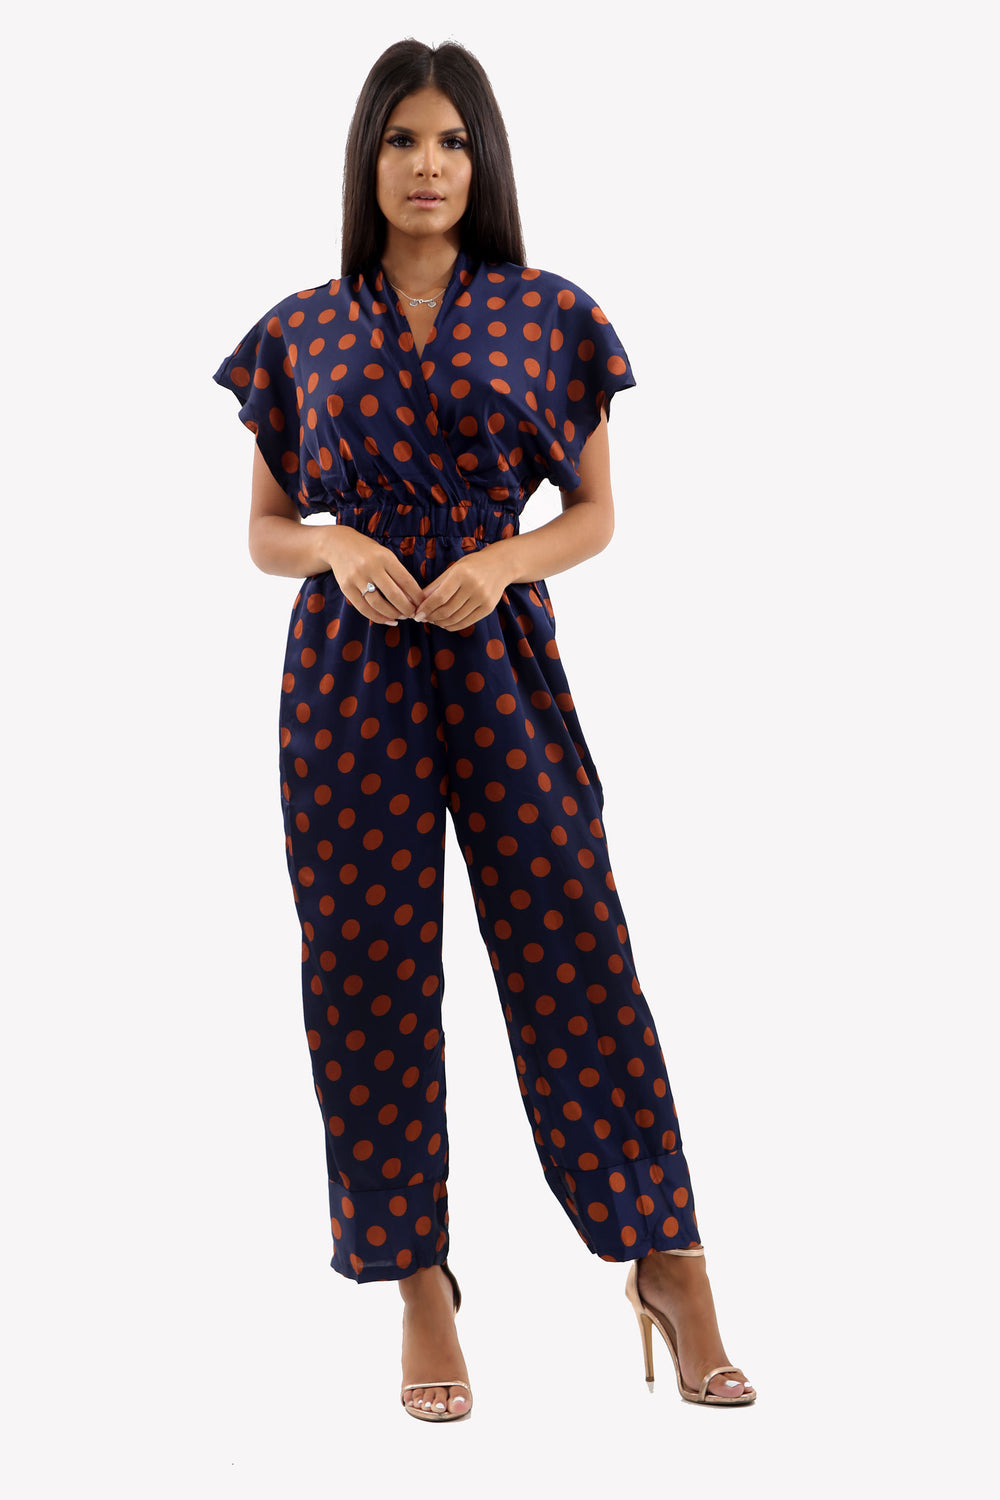 Navy Polka Dot Satin Jumpsuit With Deep V-Line